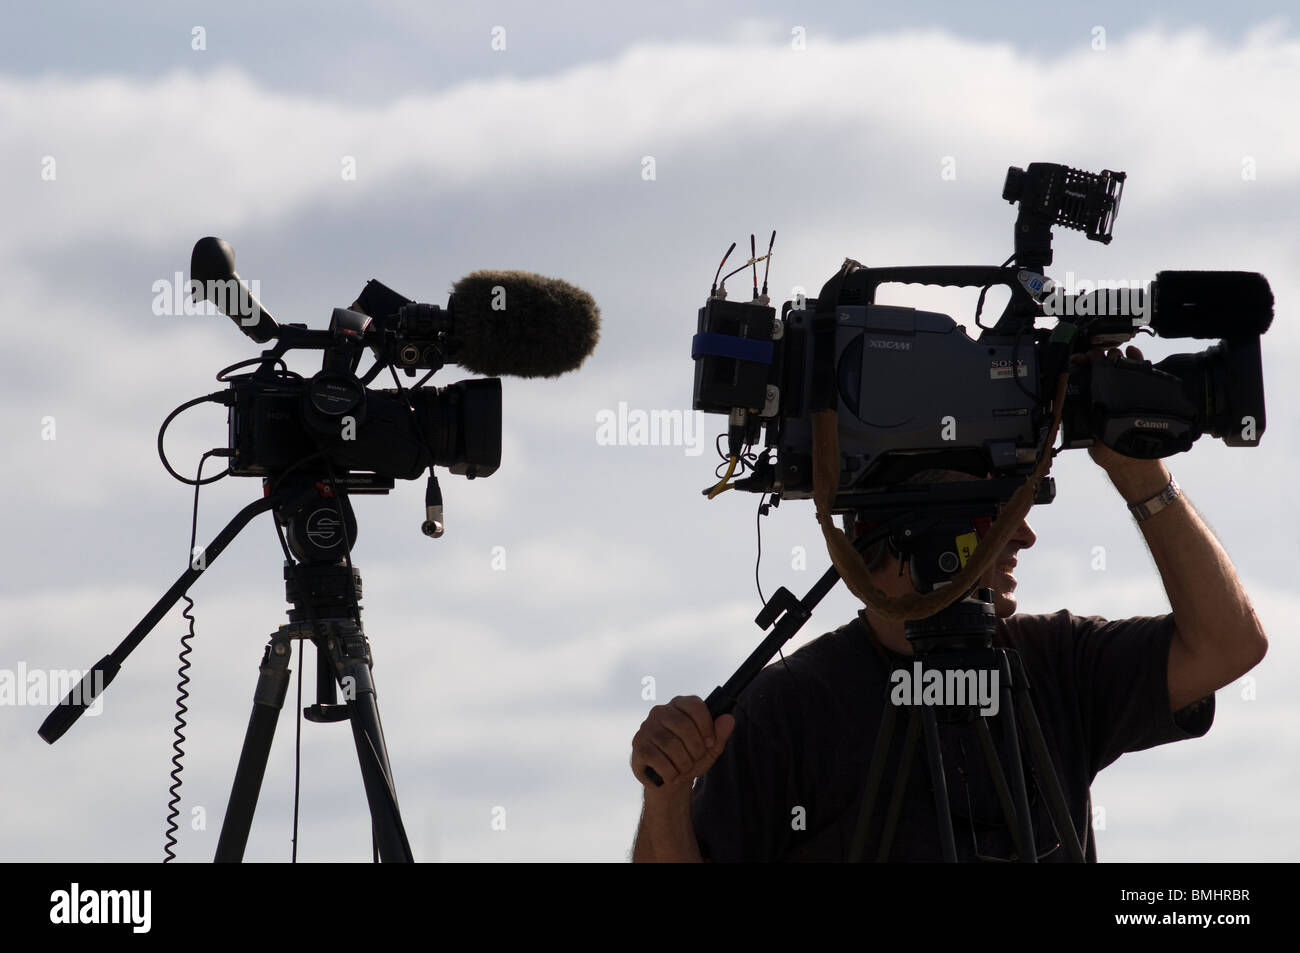 TV News cameraman in Israel - Stock Image